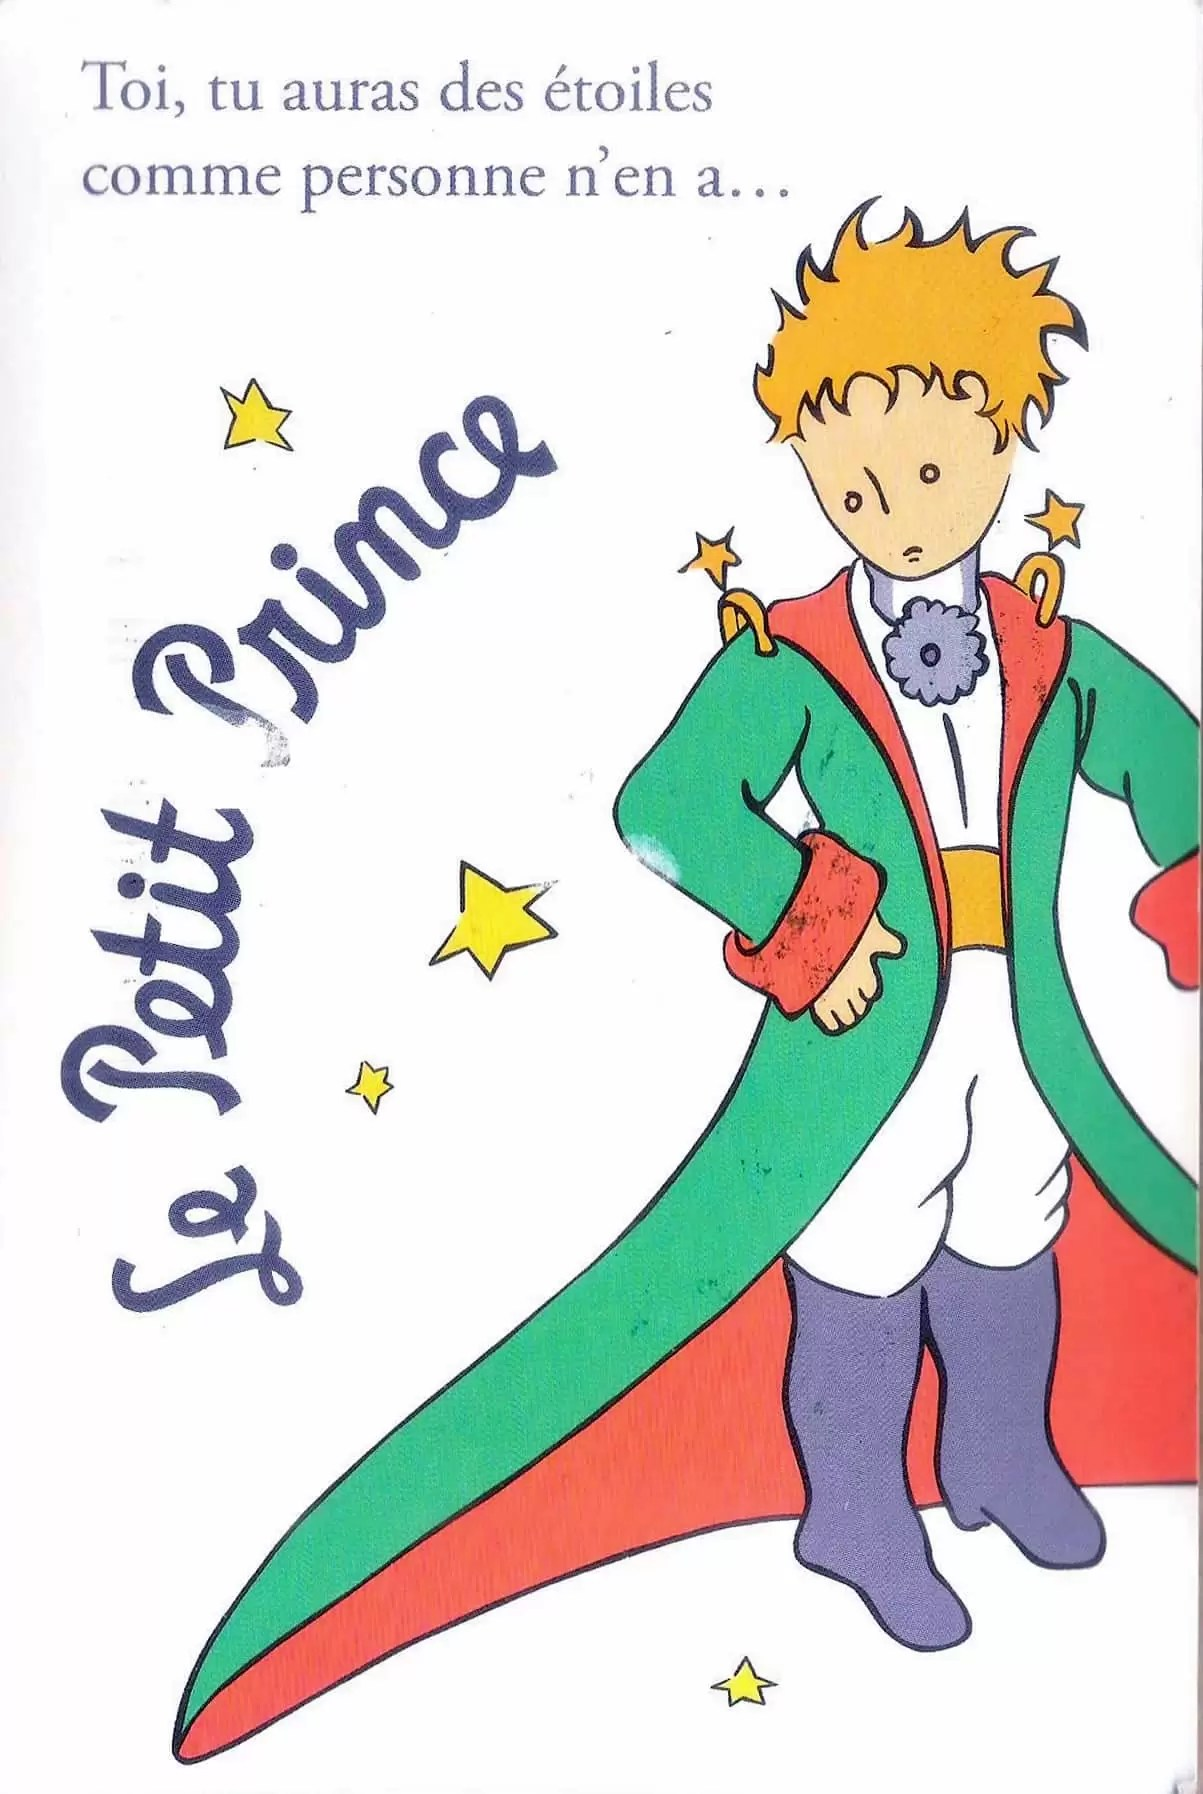 9 Facts You Did Not Know About The Little Prince